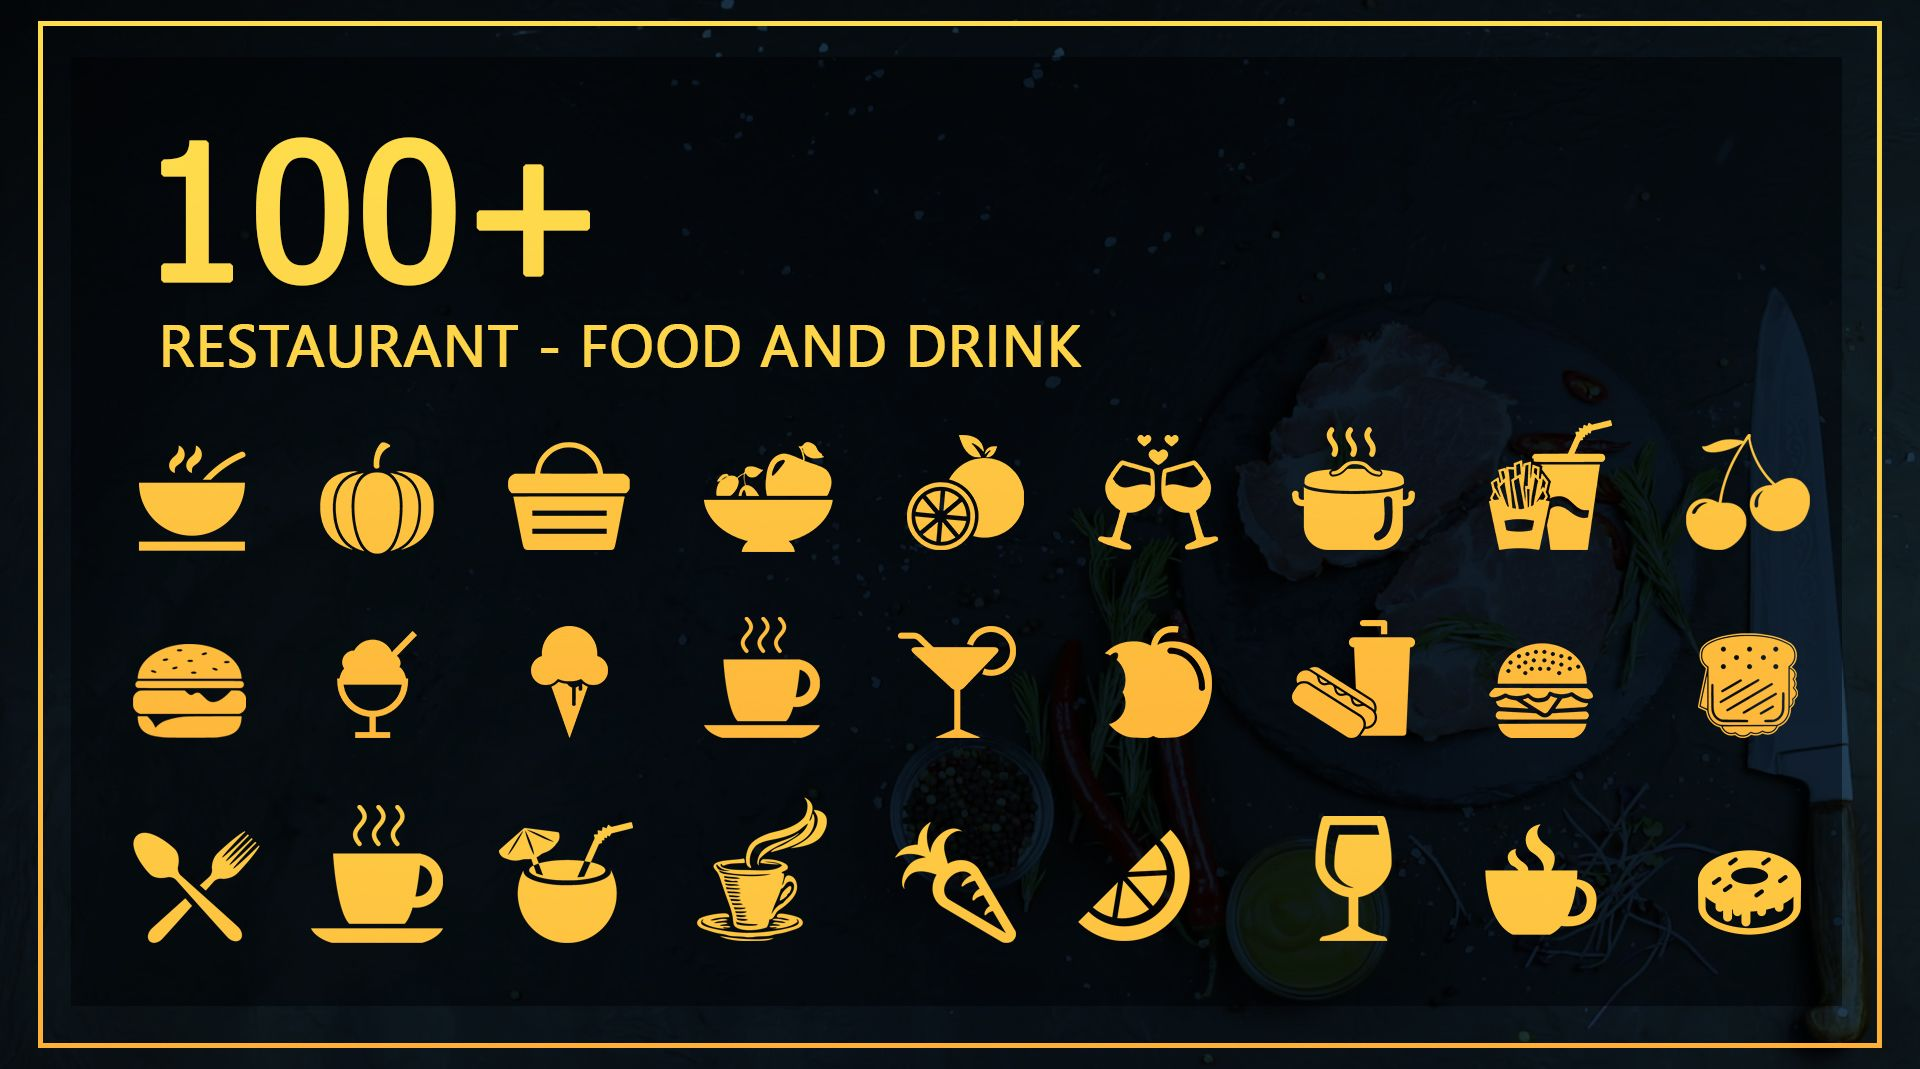 Restaurant Food And Drink - Icon Pack Screenshot 2